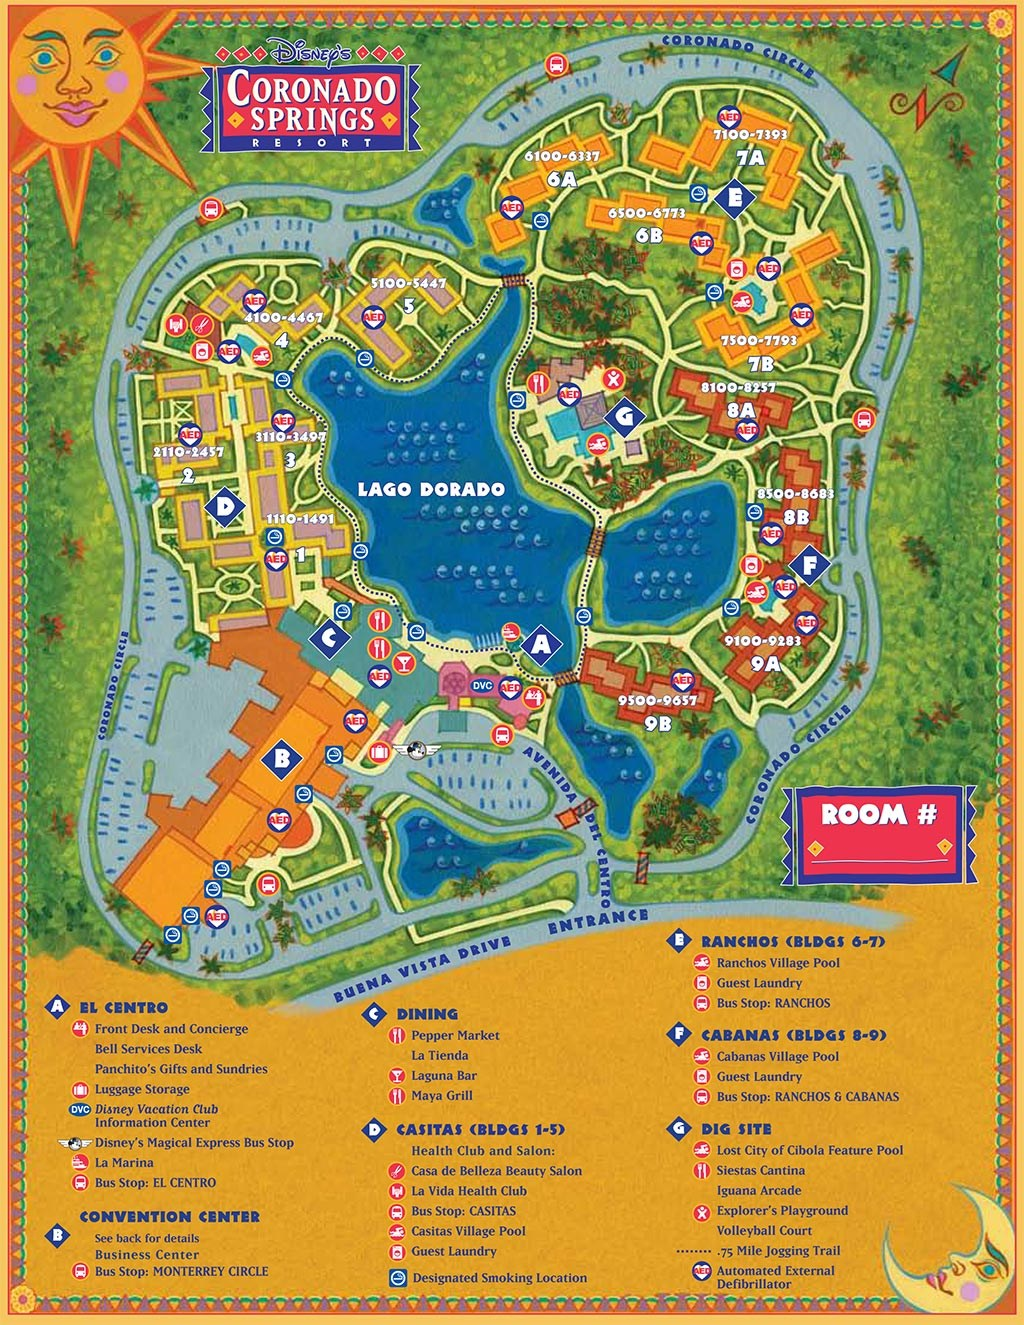 Resort Maps 2008